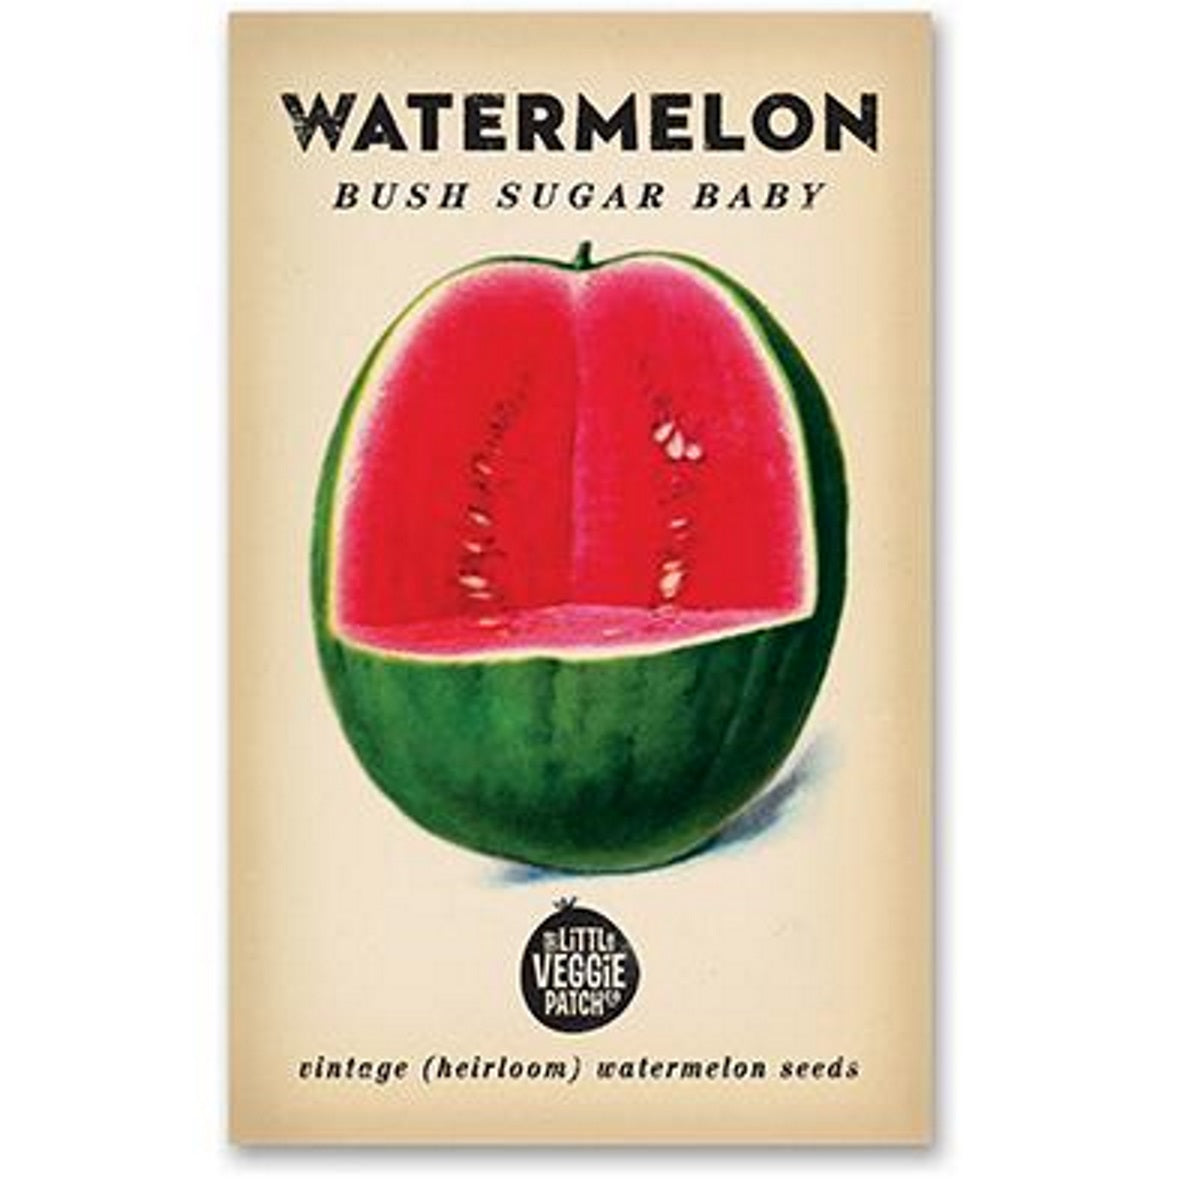 Watermelon (Bush Sugar Baby) Heirloom Seeds - Seeds - Throw Some Seeds - Australian gardening gifts and eco products online!